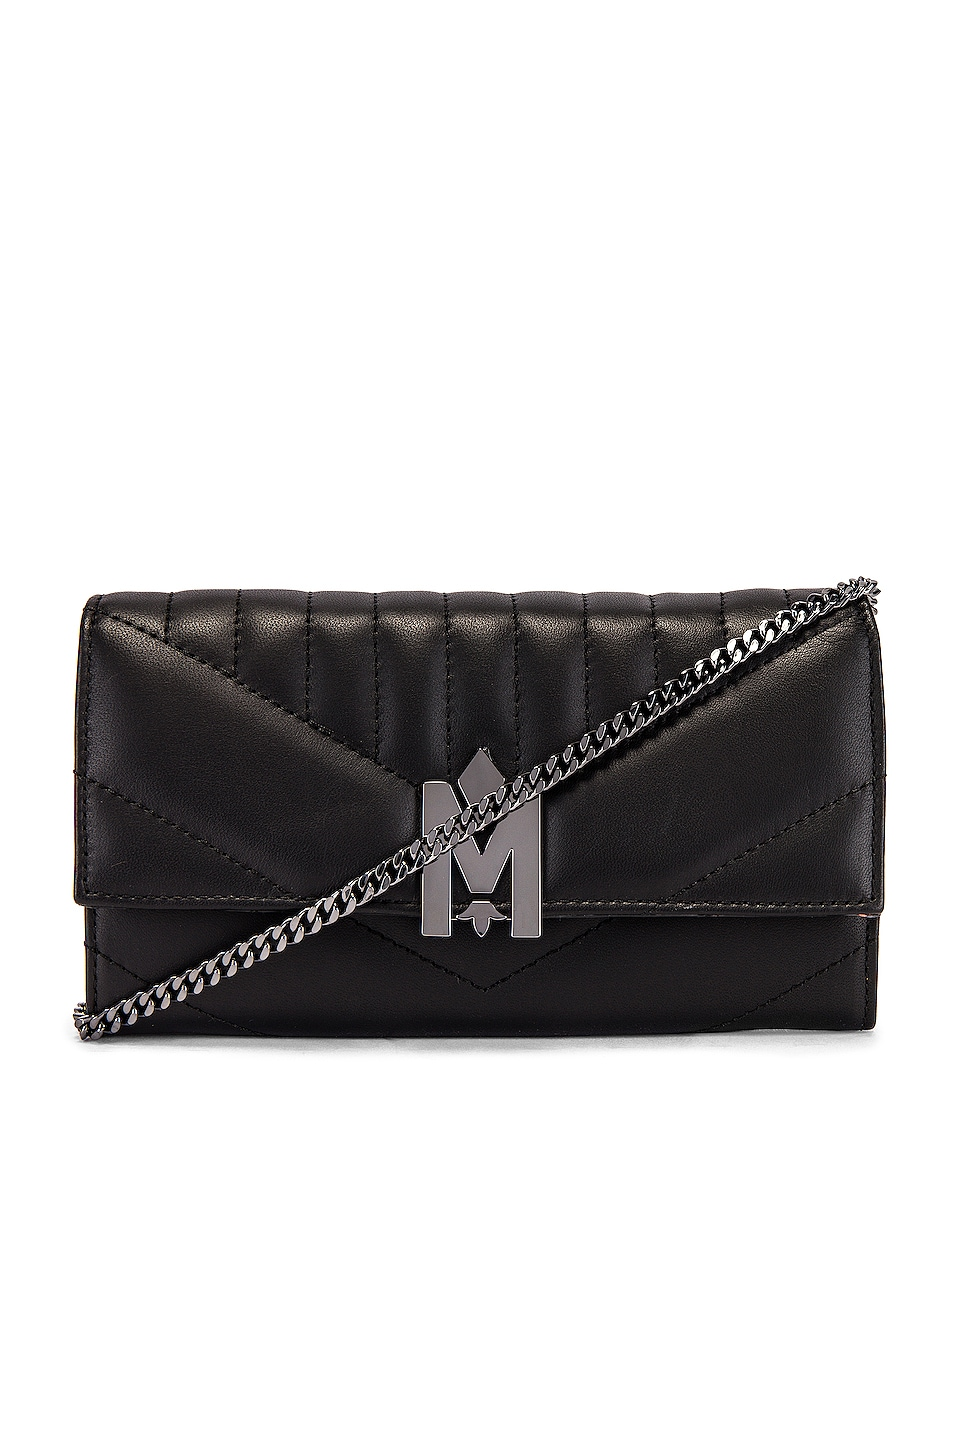 Mackage Anata Wallet in Black & Brass